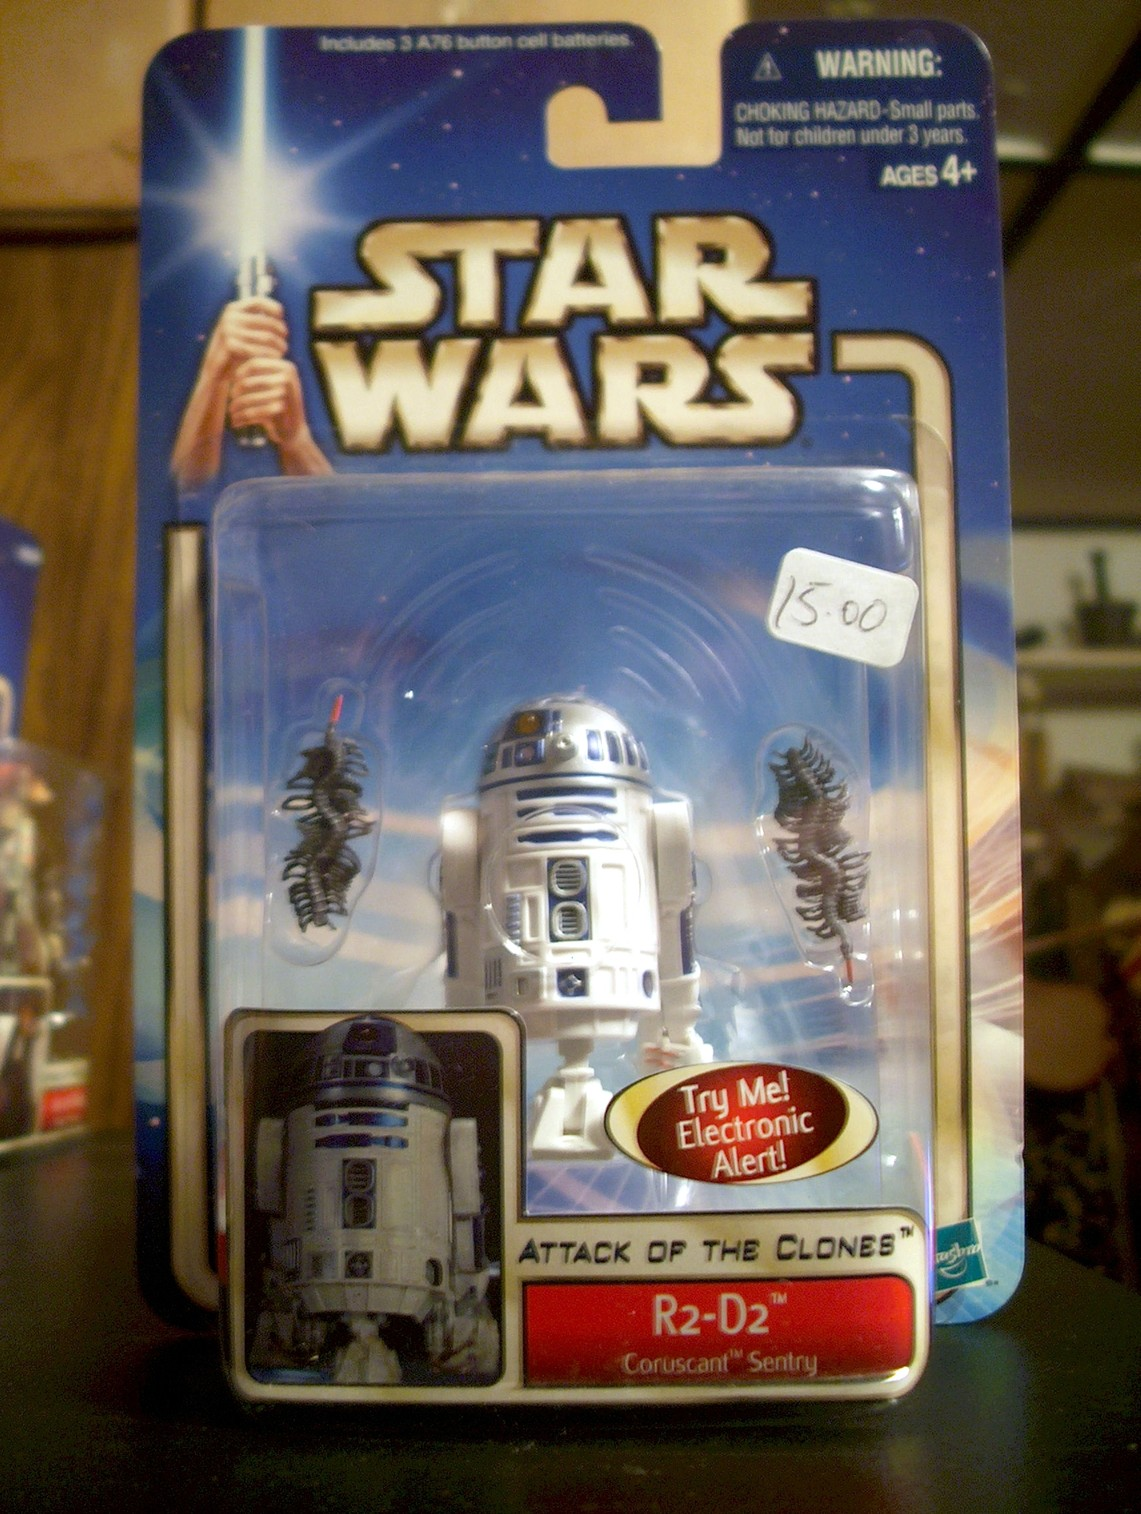 R2-D2 - Coruscant Sentry - Try Me! Electronic Alert!